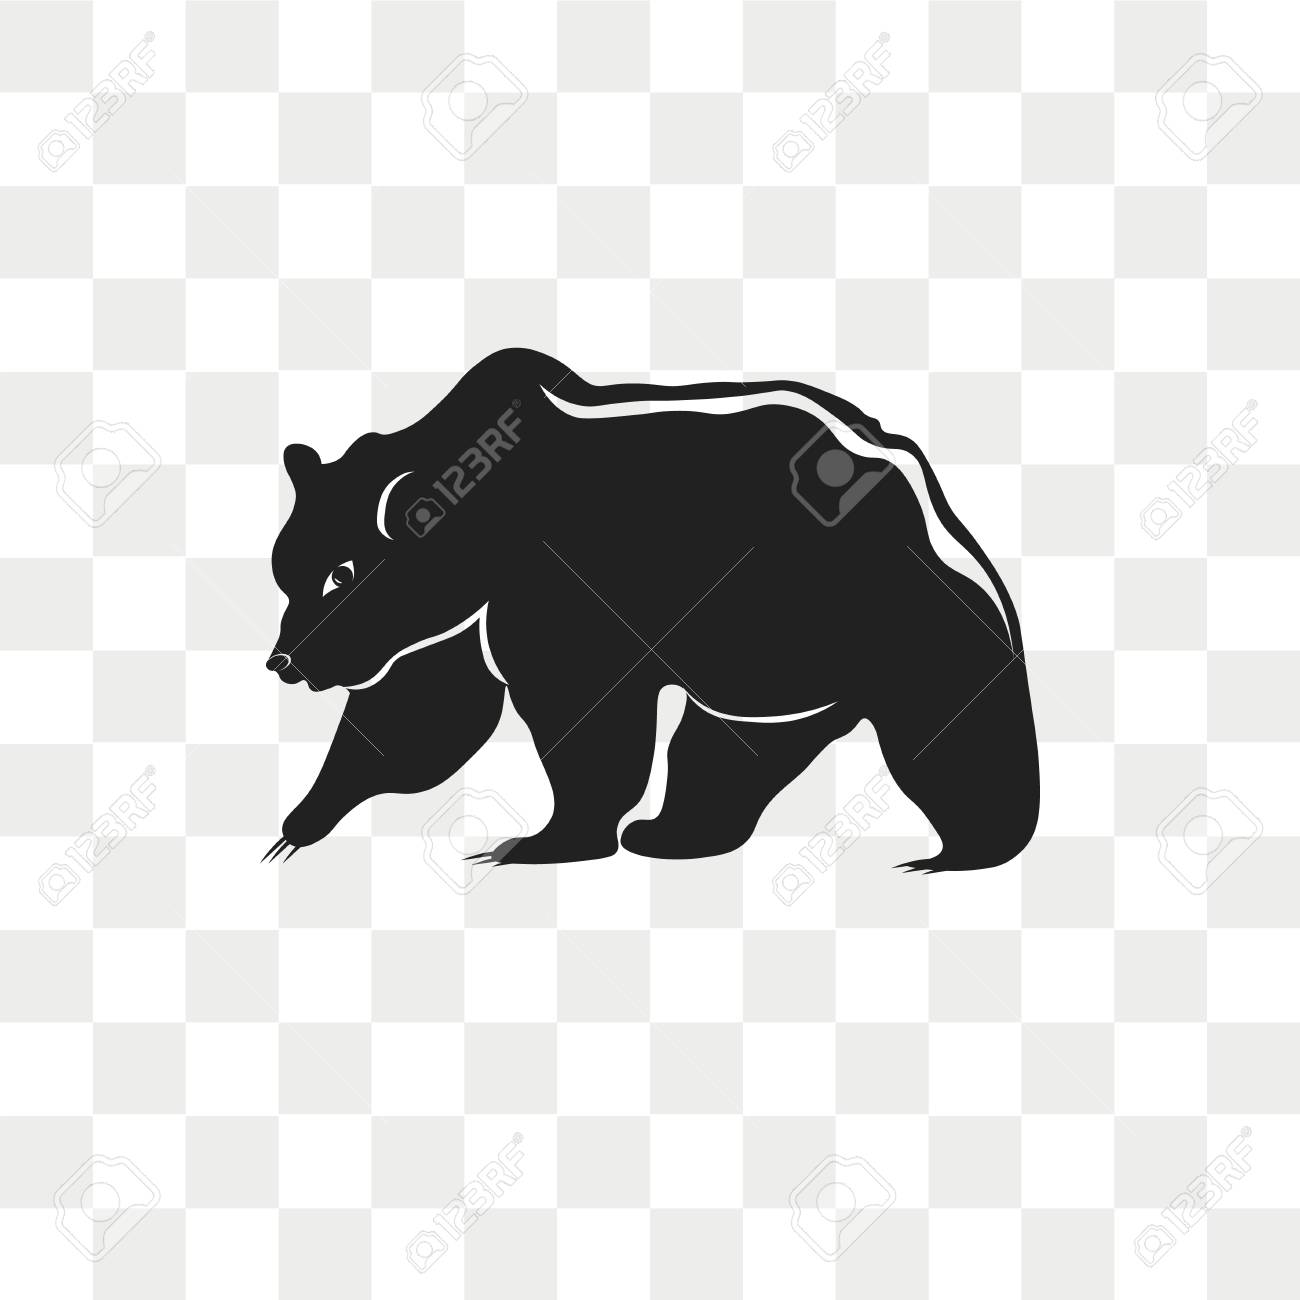 bear vector icon isolated on transparent background bear logo royalty free cliparts vectors and stock illustration image 108634969 bear vector icon isolated on transparent background bear logo